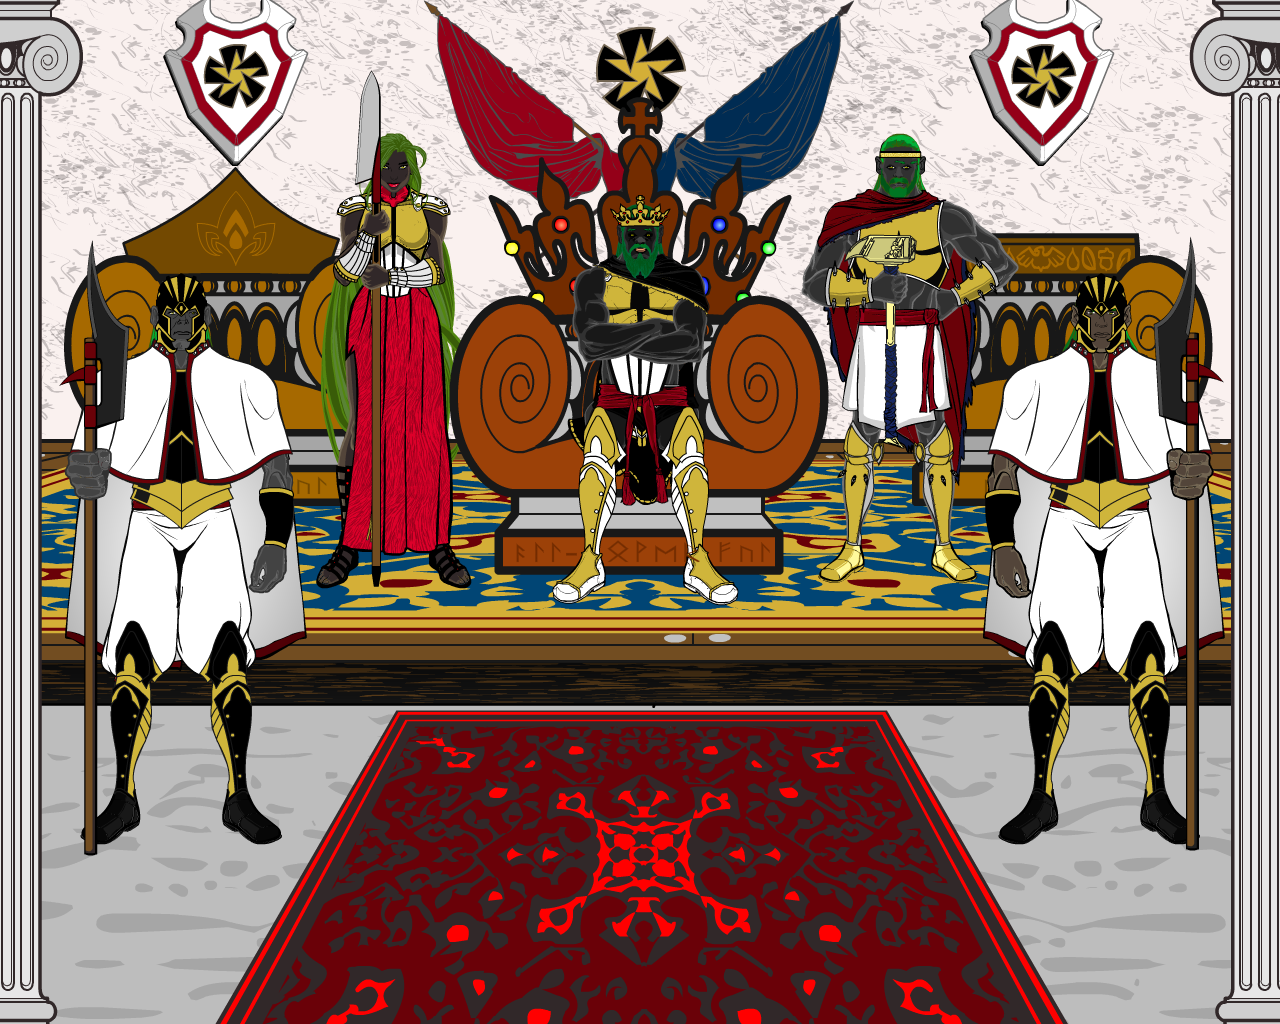 http://www.heromachine.com/wp-content/legacy/forum-image-uploads/headlessgeneral/2012/03/Throne-Room.png